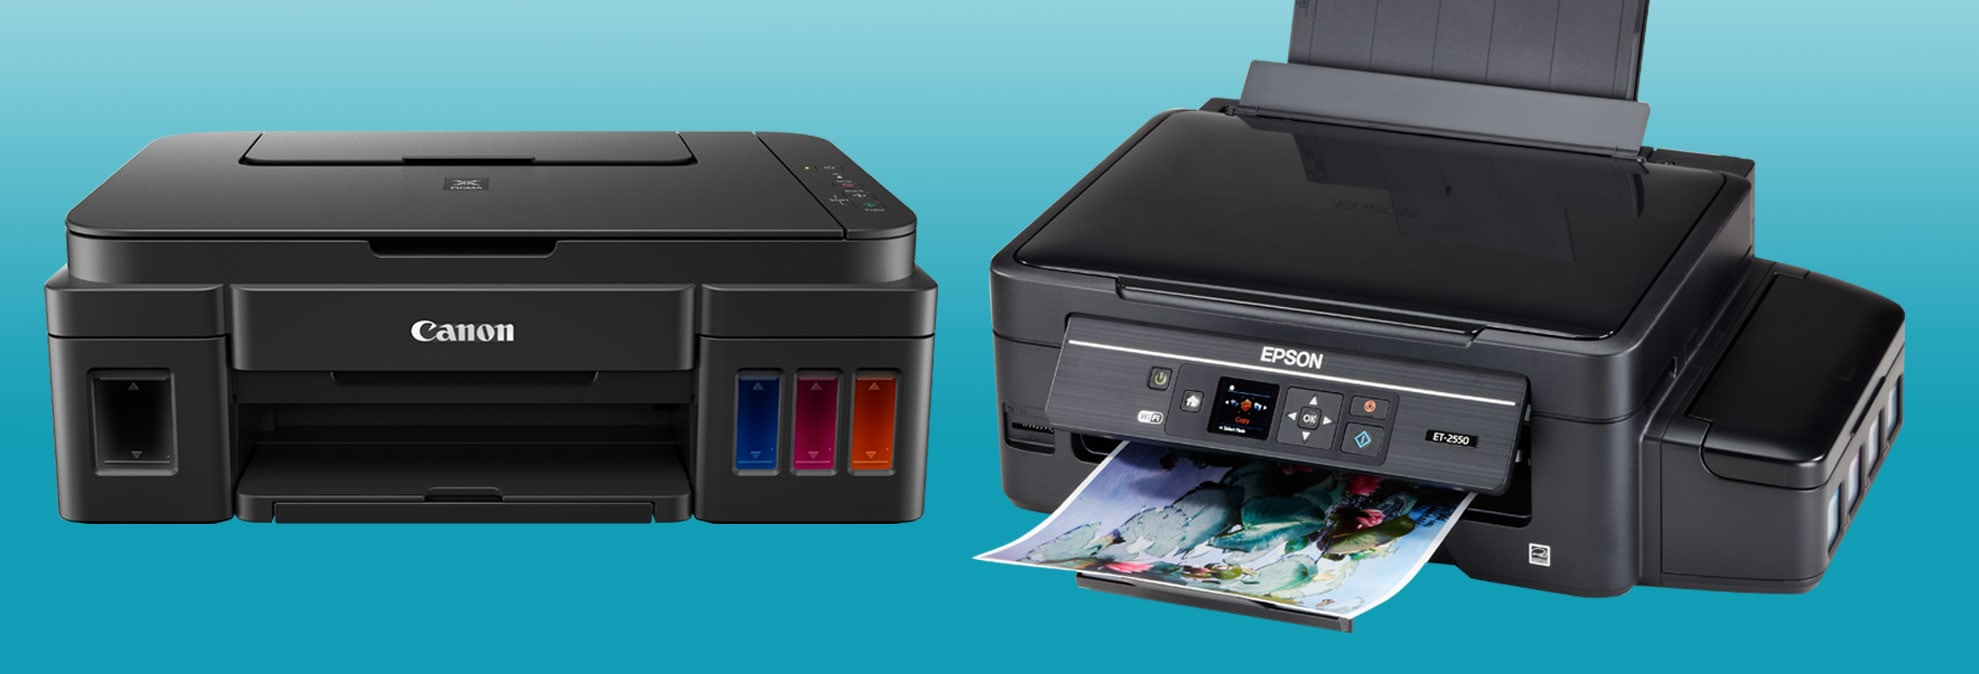 cheap printer for people who want b u0026w text and nothing else